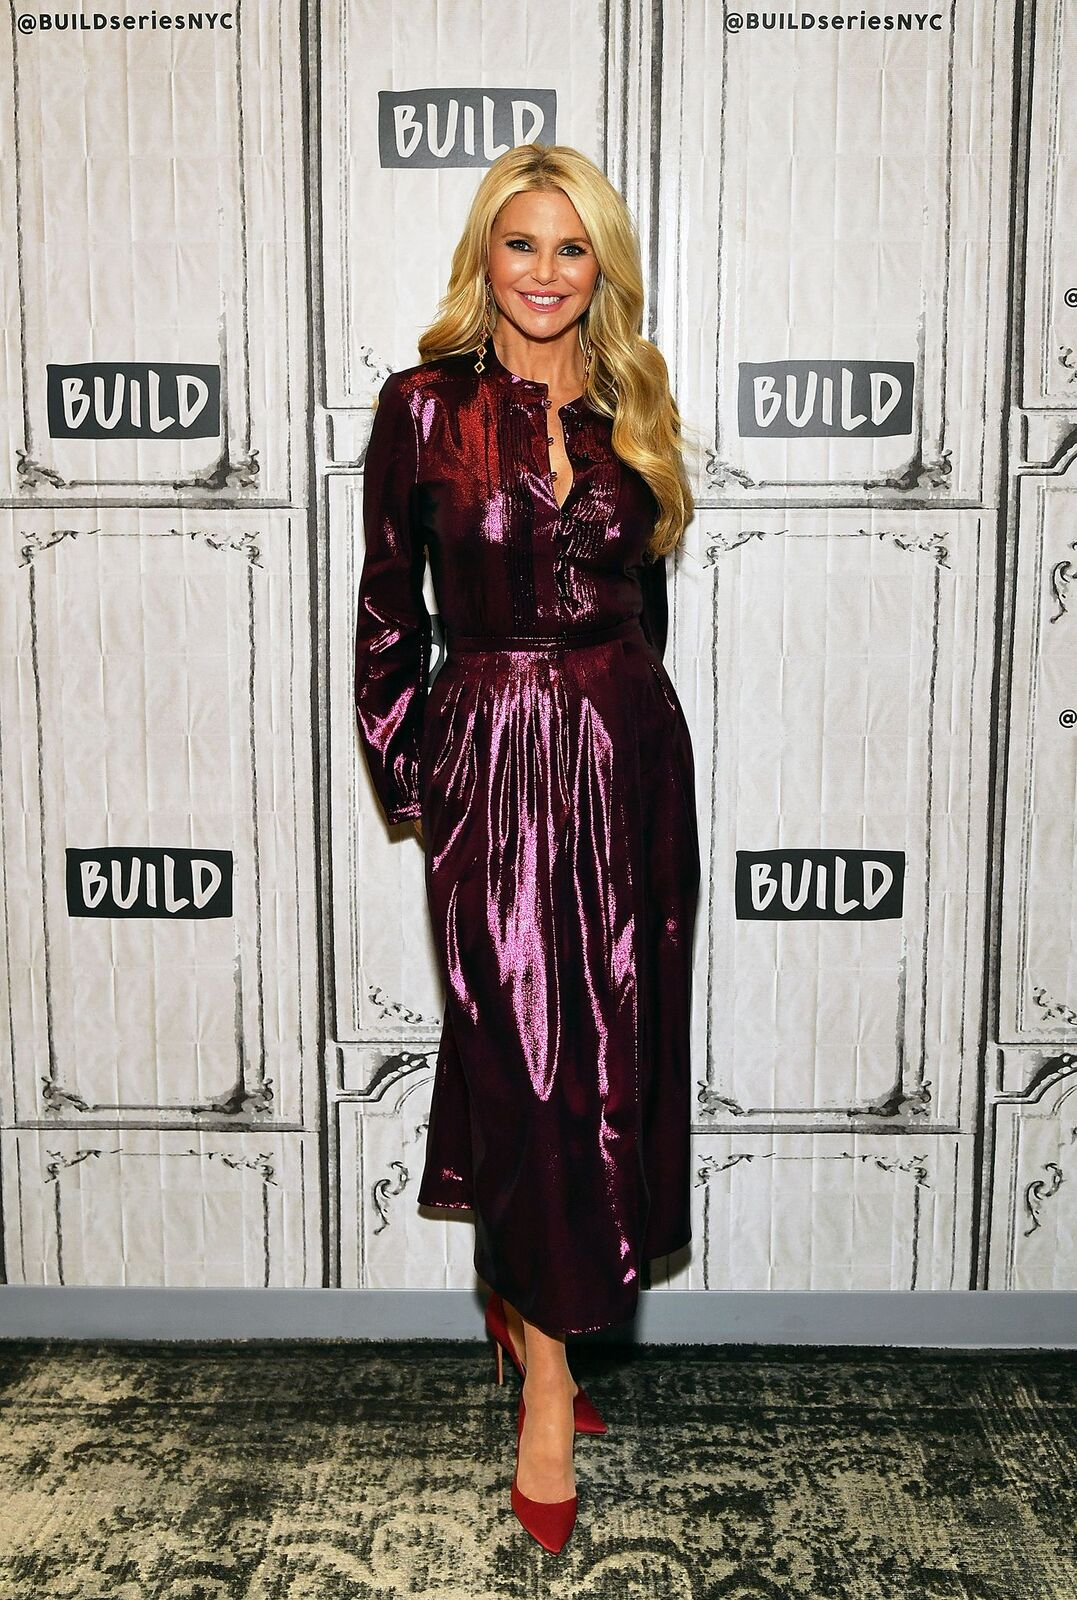 """Christie Brinkley visits Build Series to discuss """"Milestones of Me"""" campaign to encourage women to celebrate life's milestones at Build Studio on January 29, 2019 in New York City. 